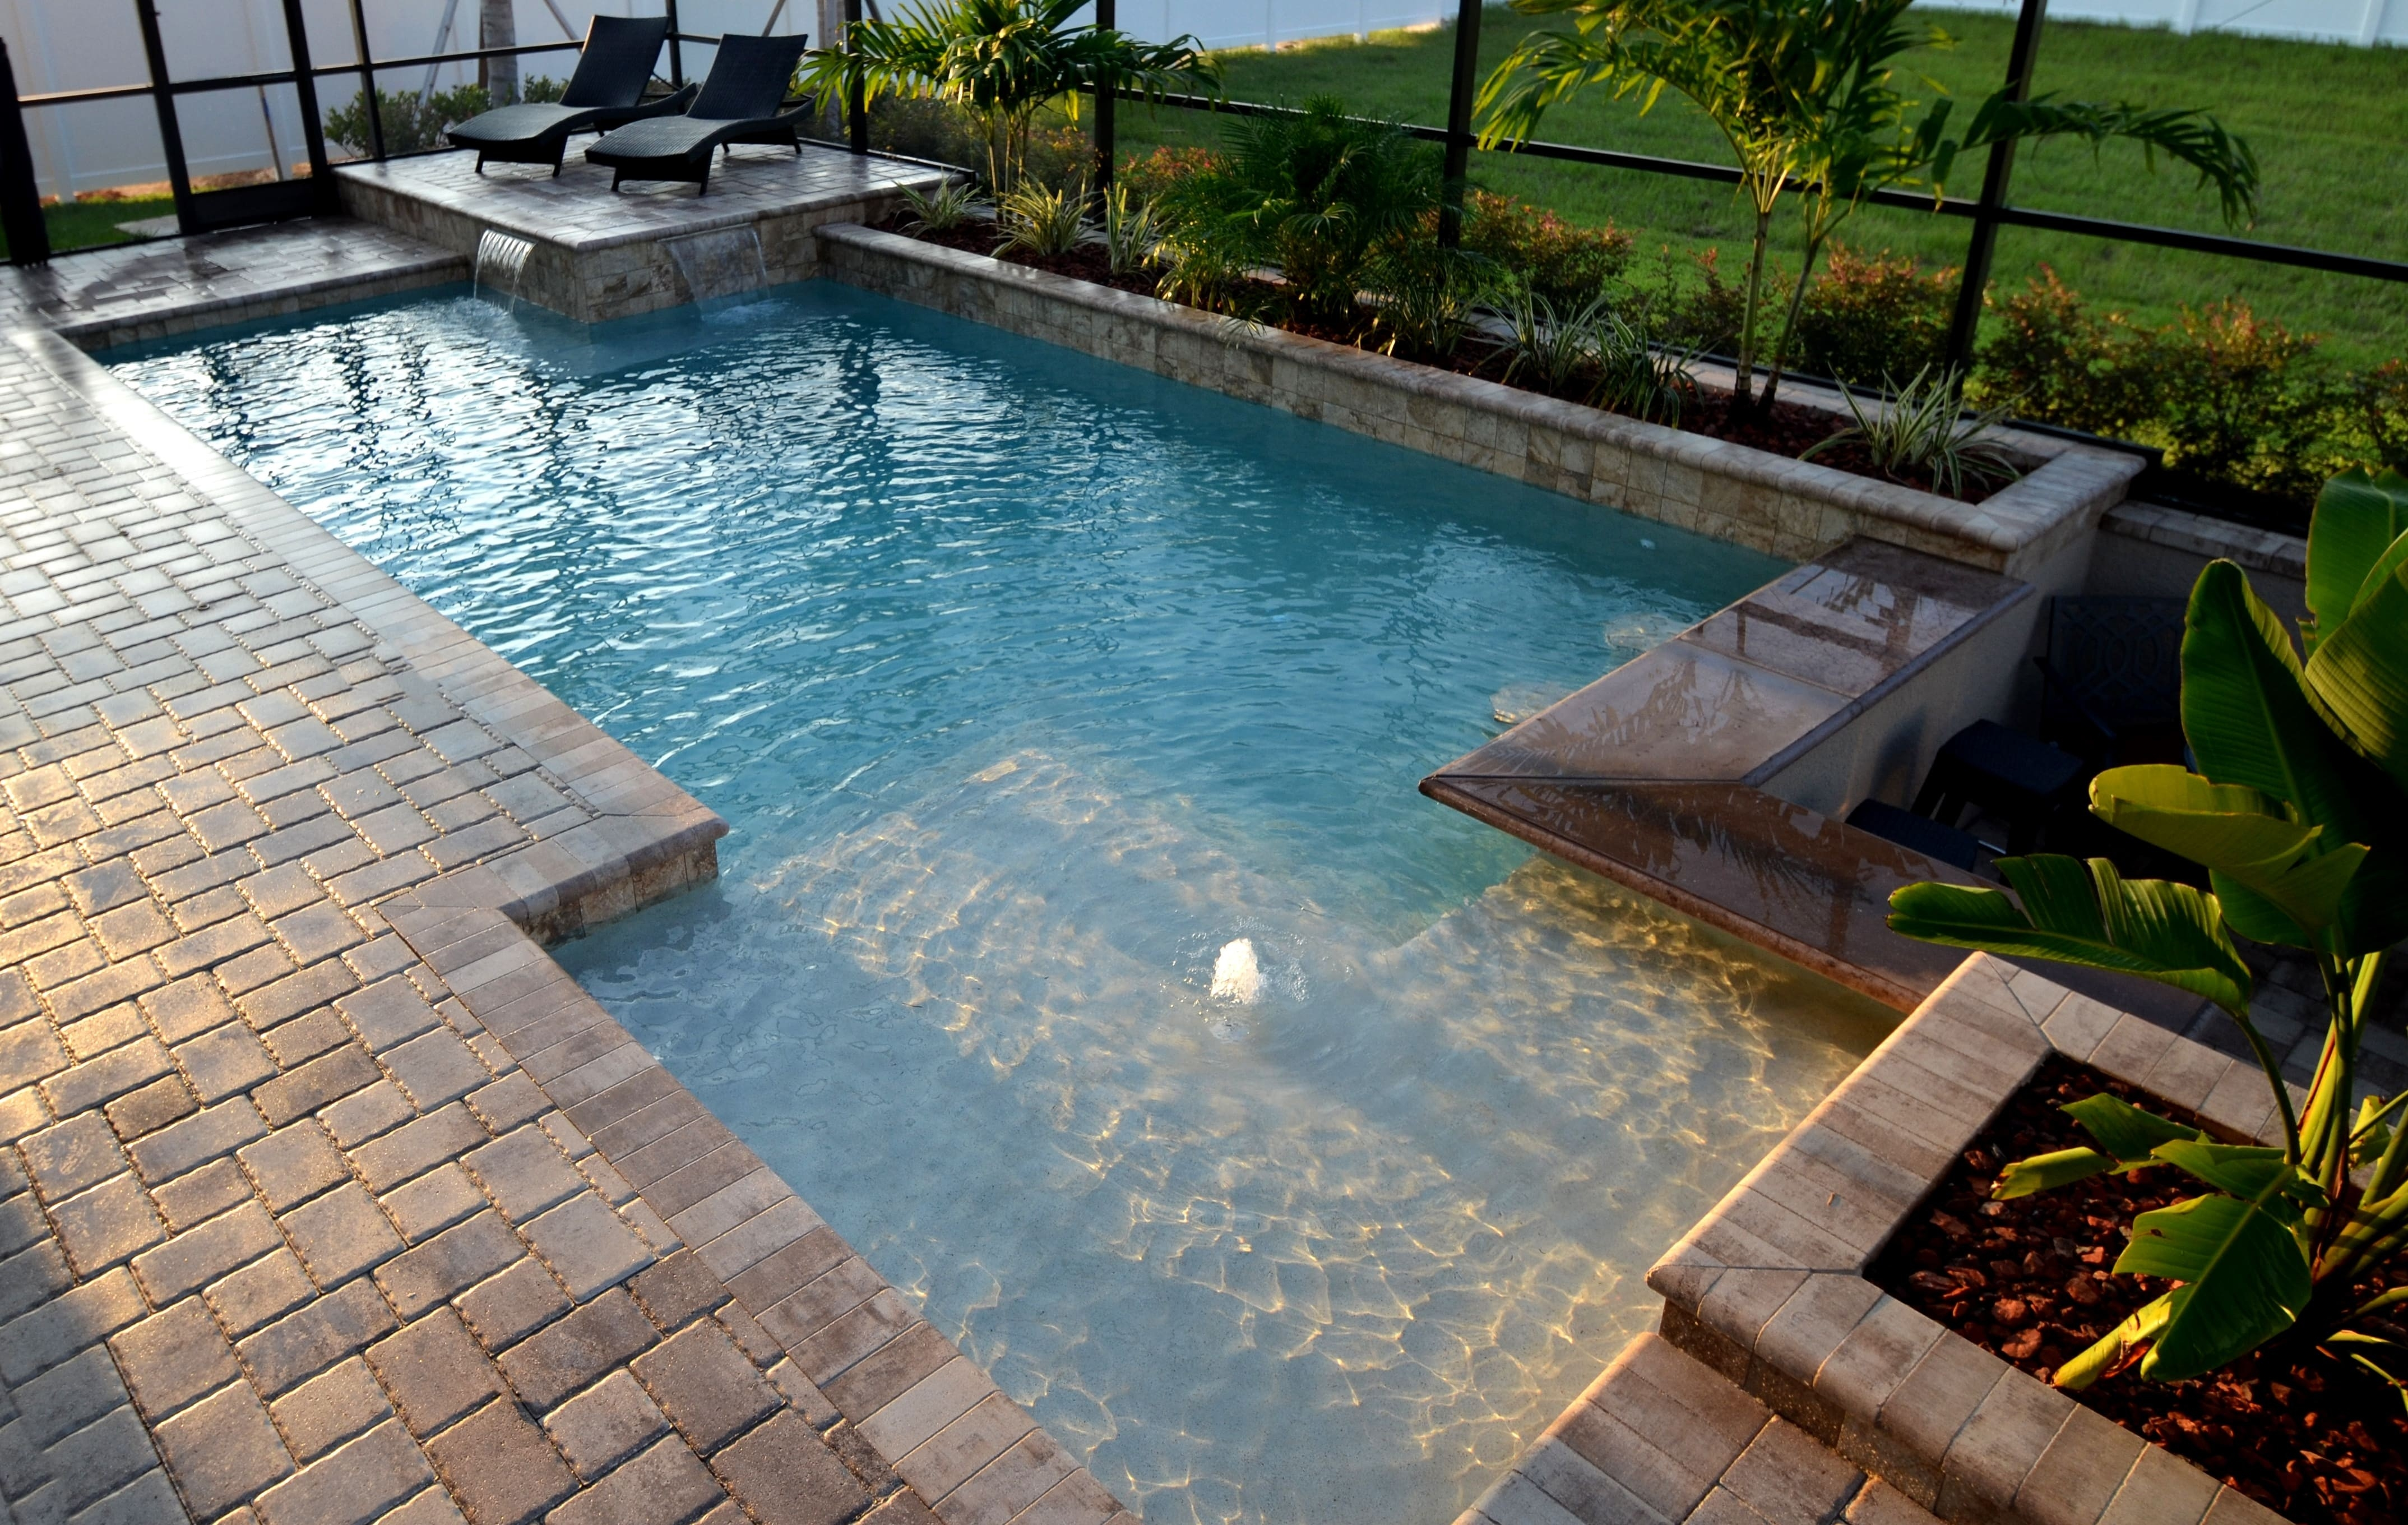 unique geometric swimming pool designs ideas | swimming pool ideas 2018 in YDCRDMK